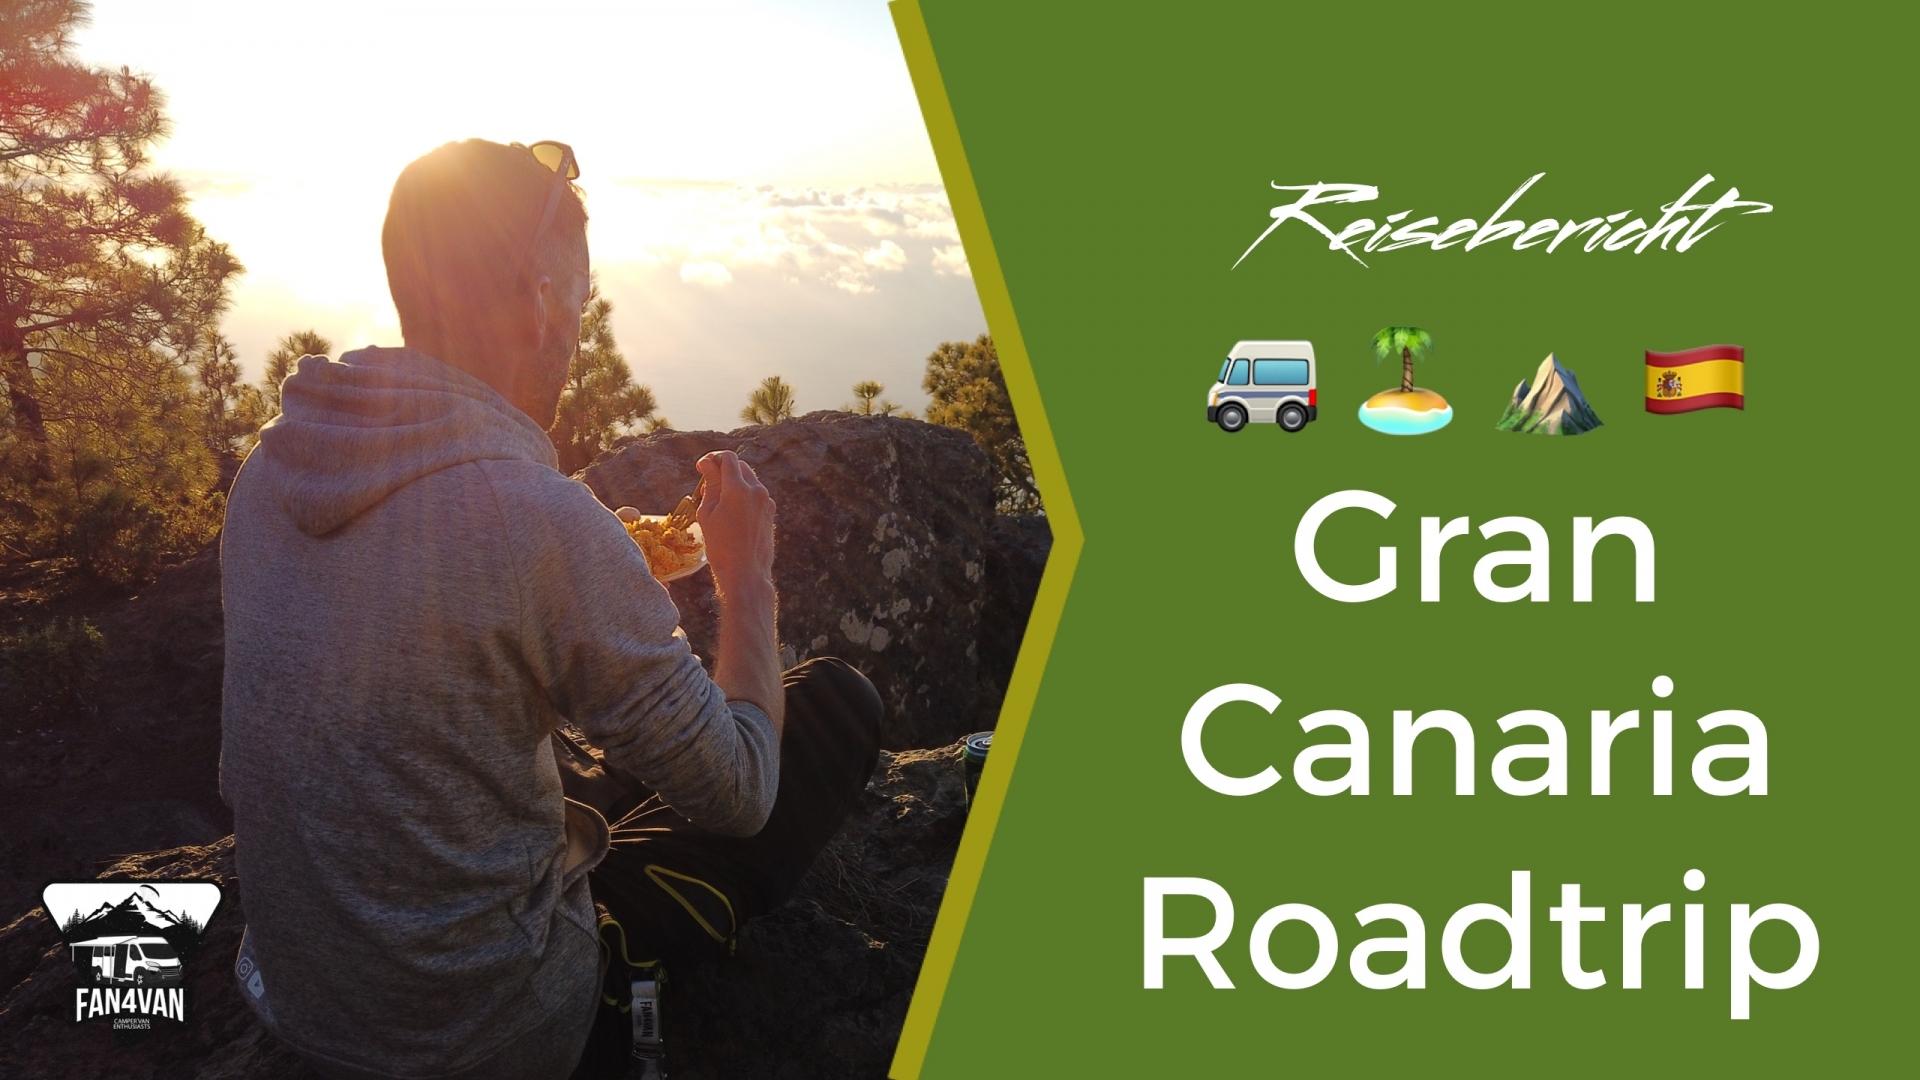 Roadtrip Gran Canaria